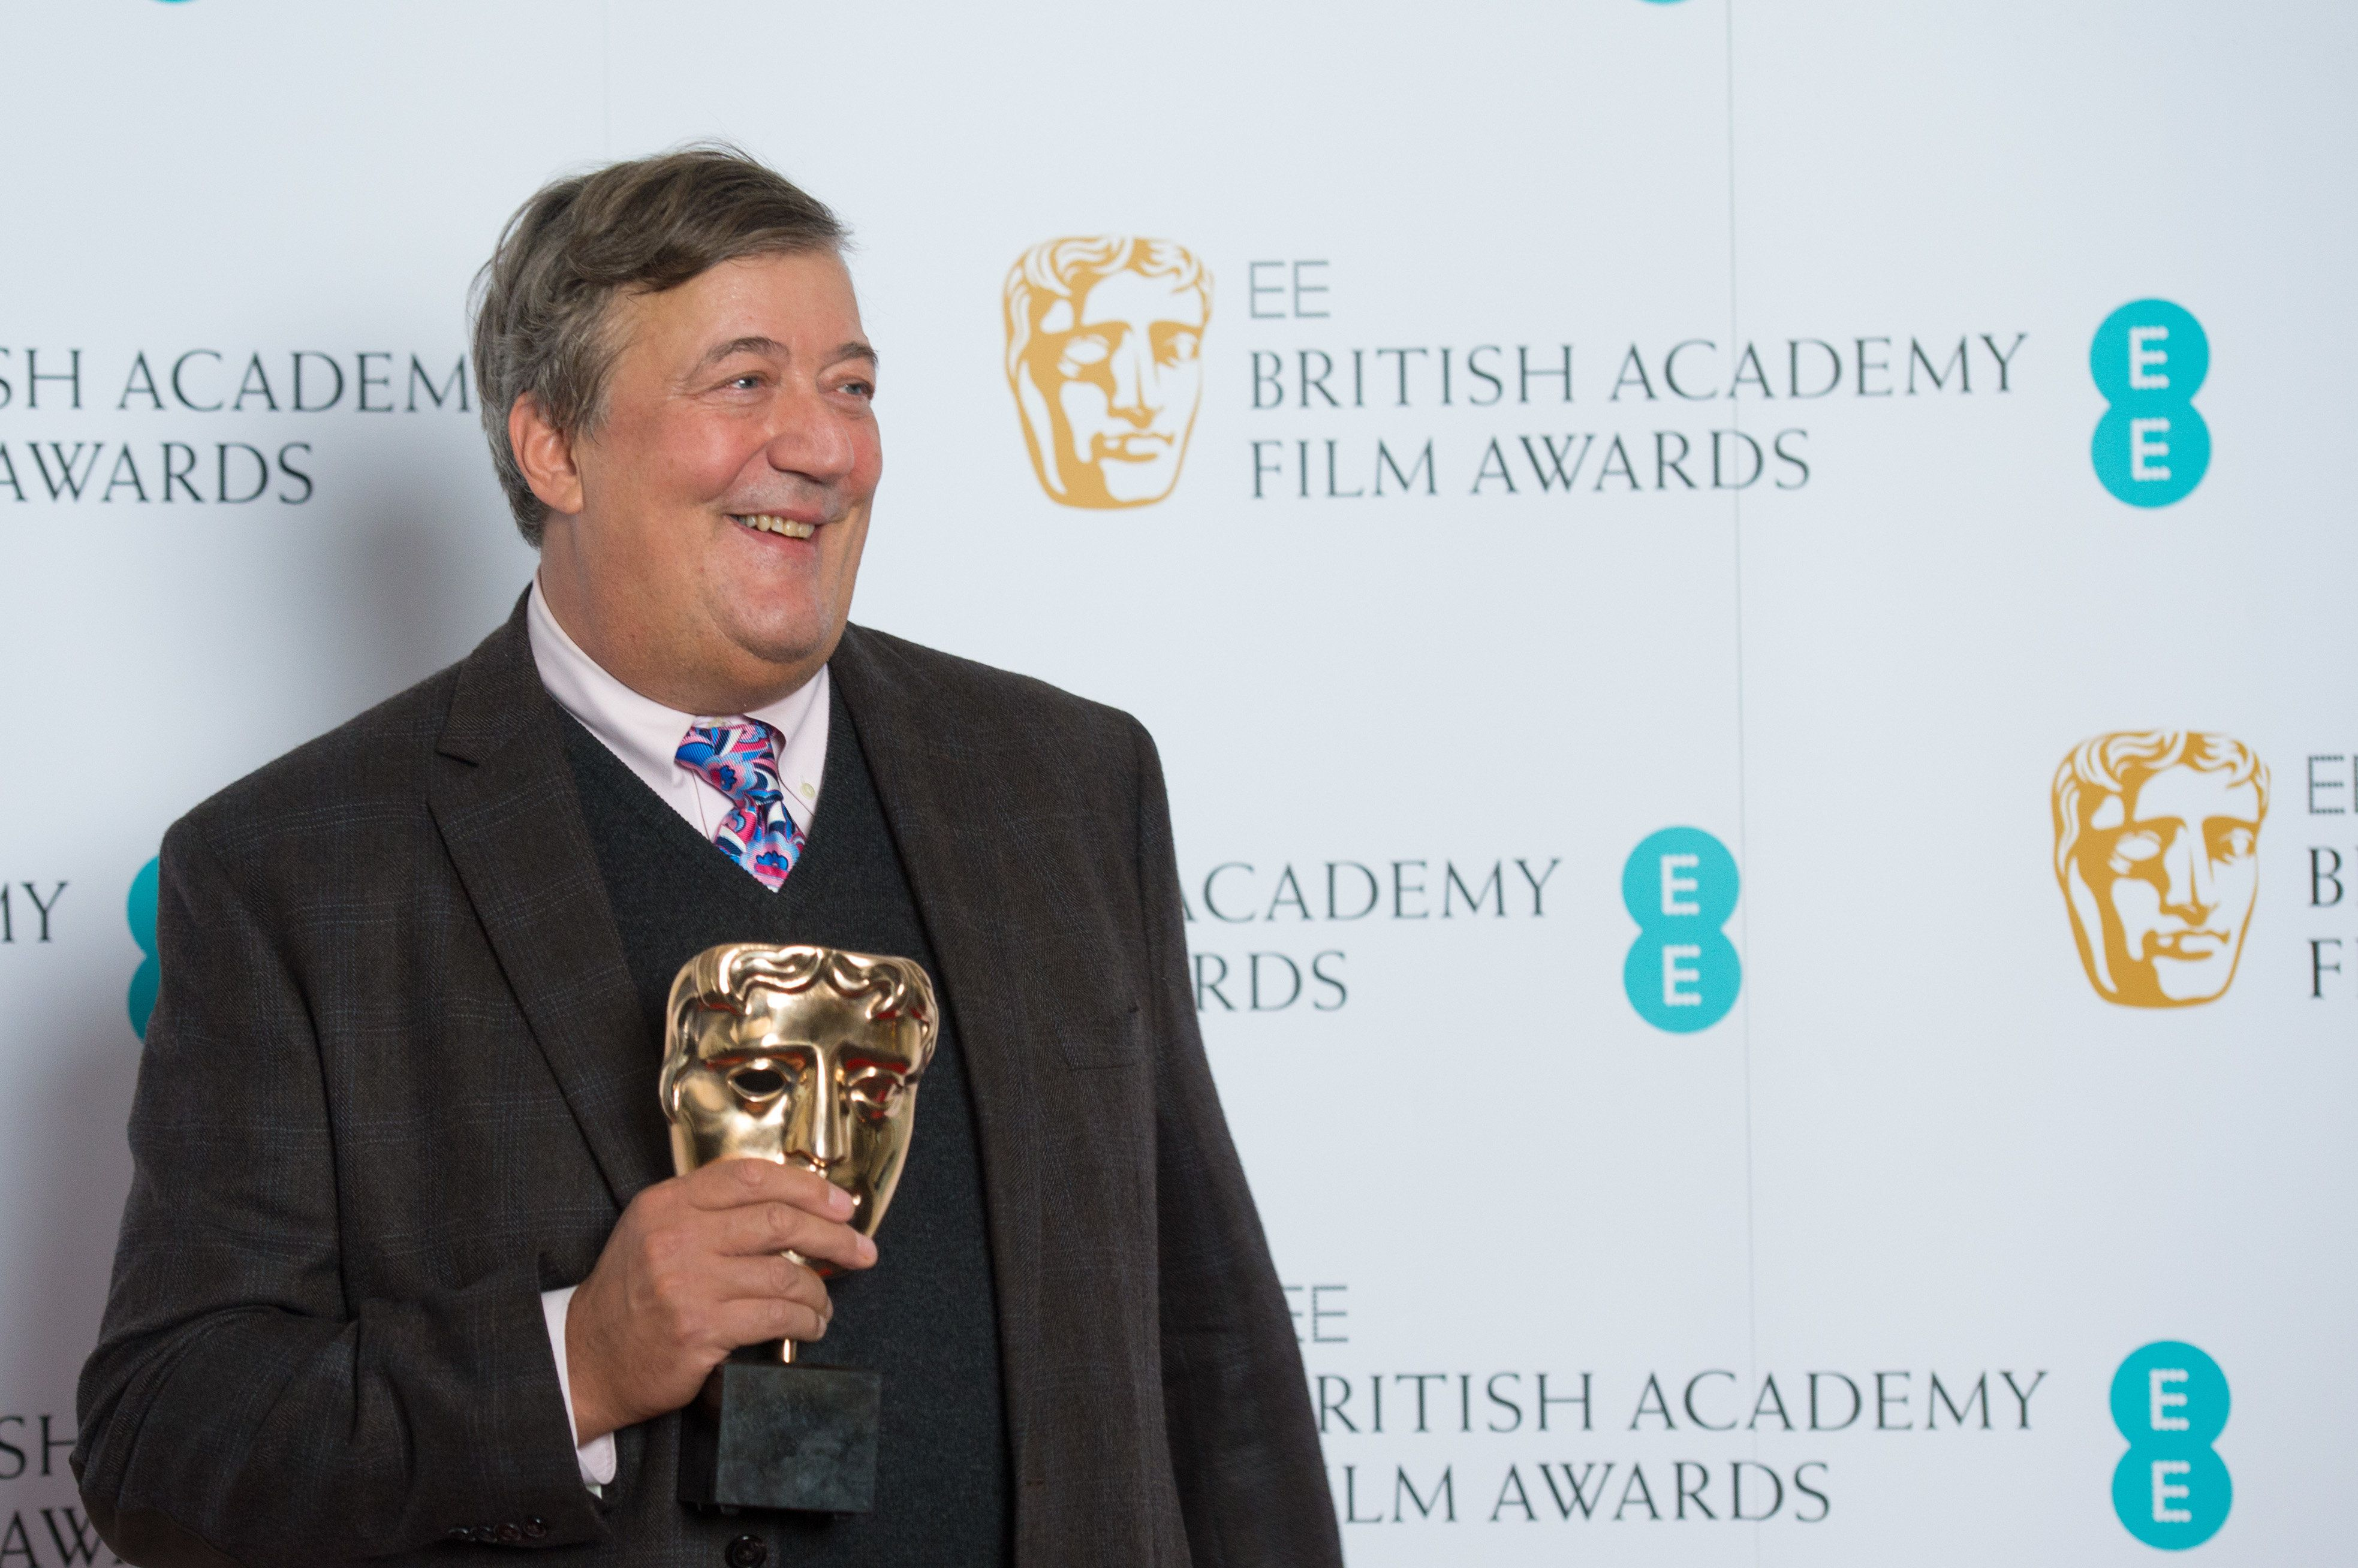 Stephen Fry Quits Hosting Baftas To Let Someone Else 'Take The Awards Show To New